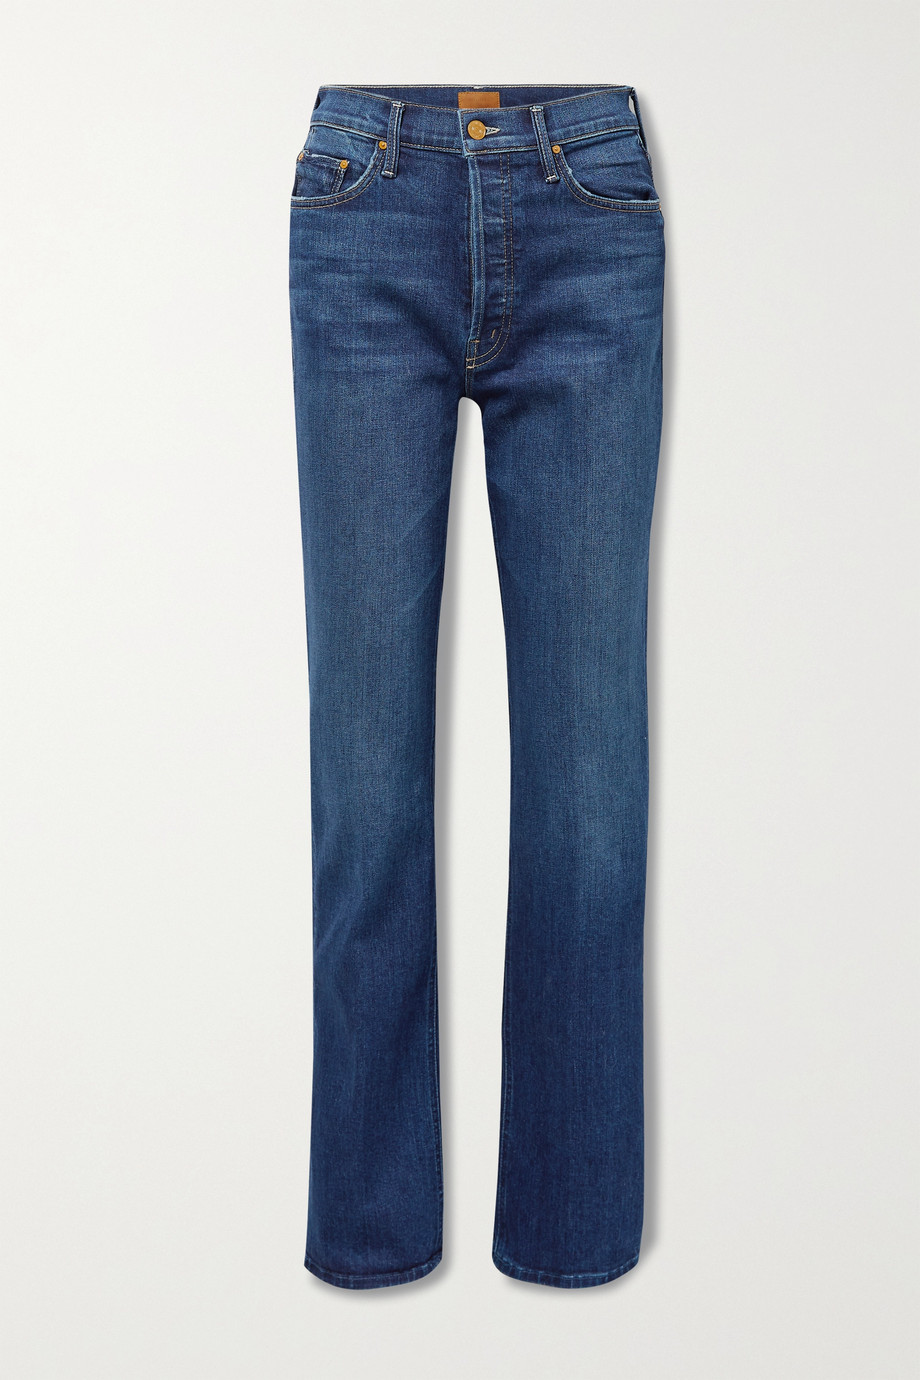 MOTHER The Tripper Sneak high-rise straight-leg jeans